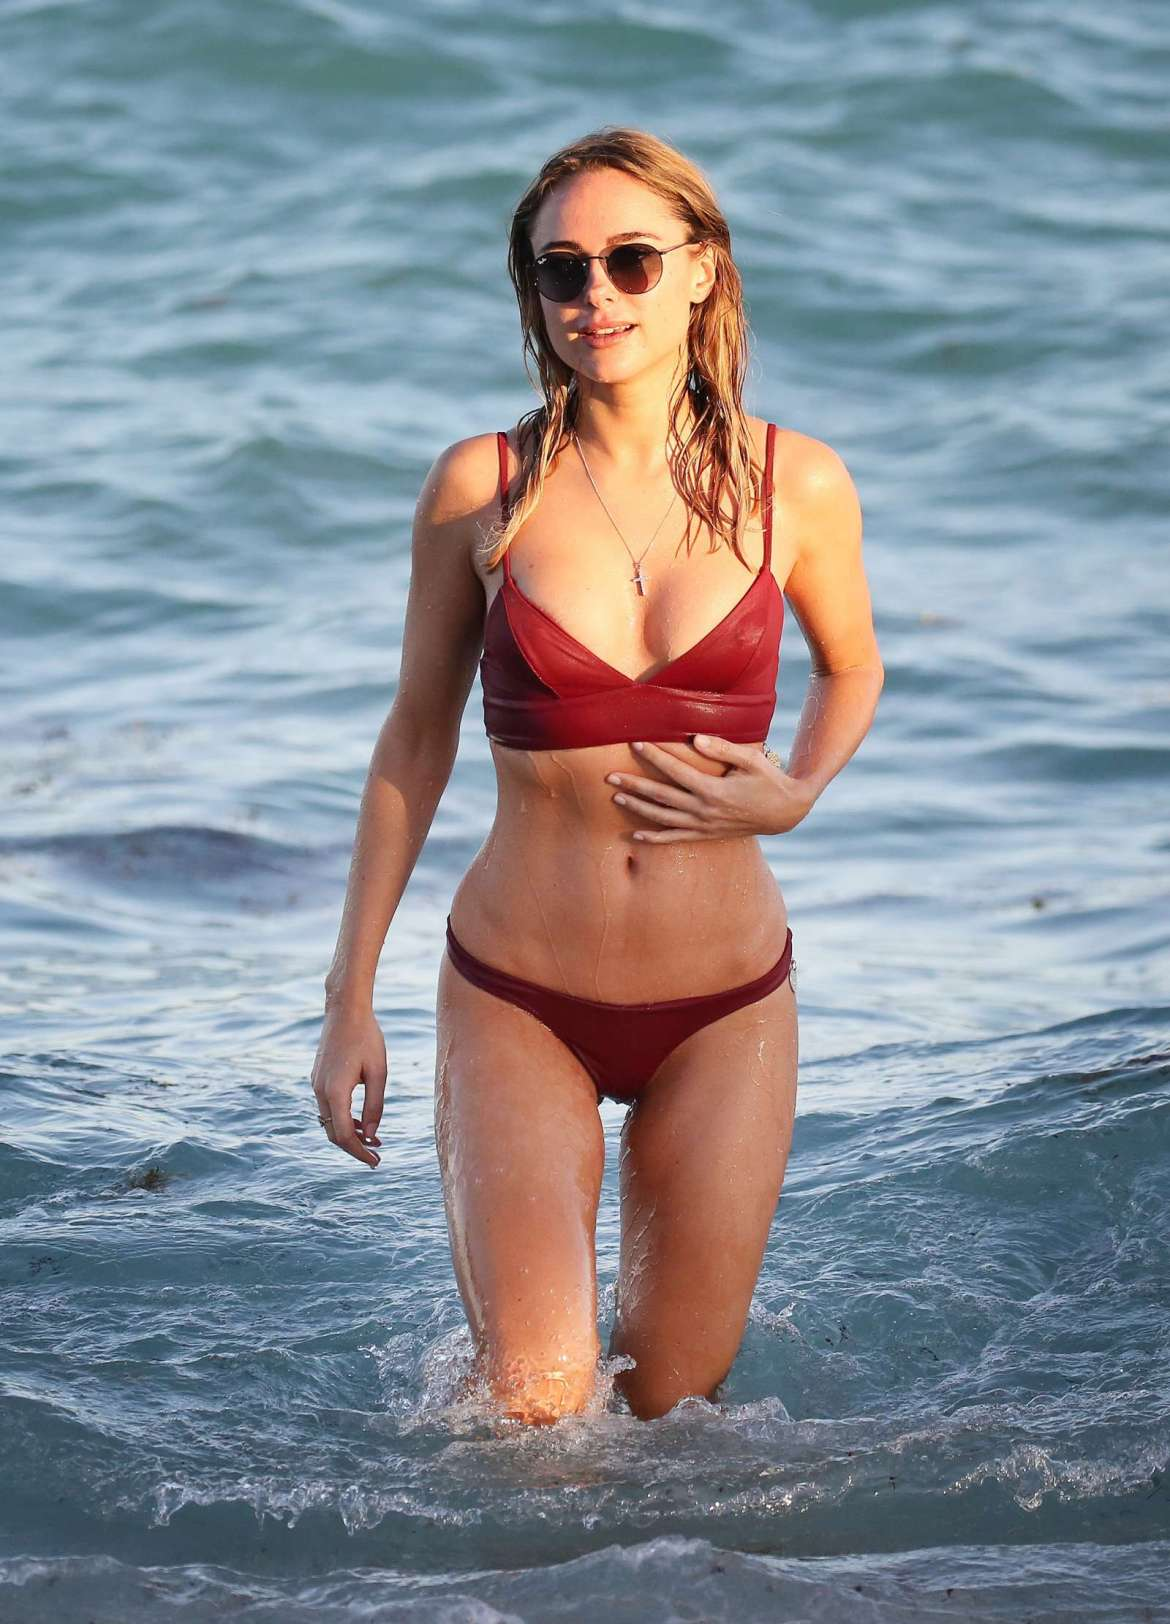 Kimberley Garner in Red Bikini on the beach in Miami